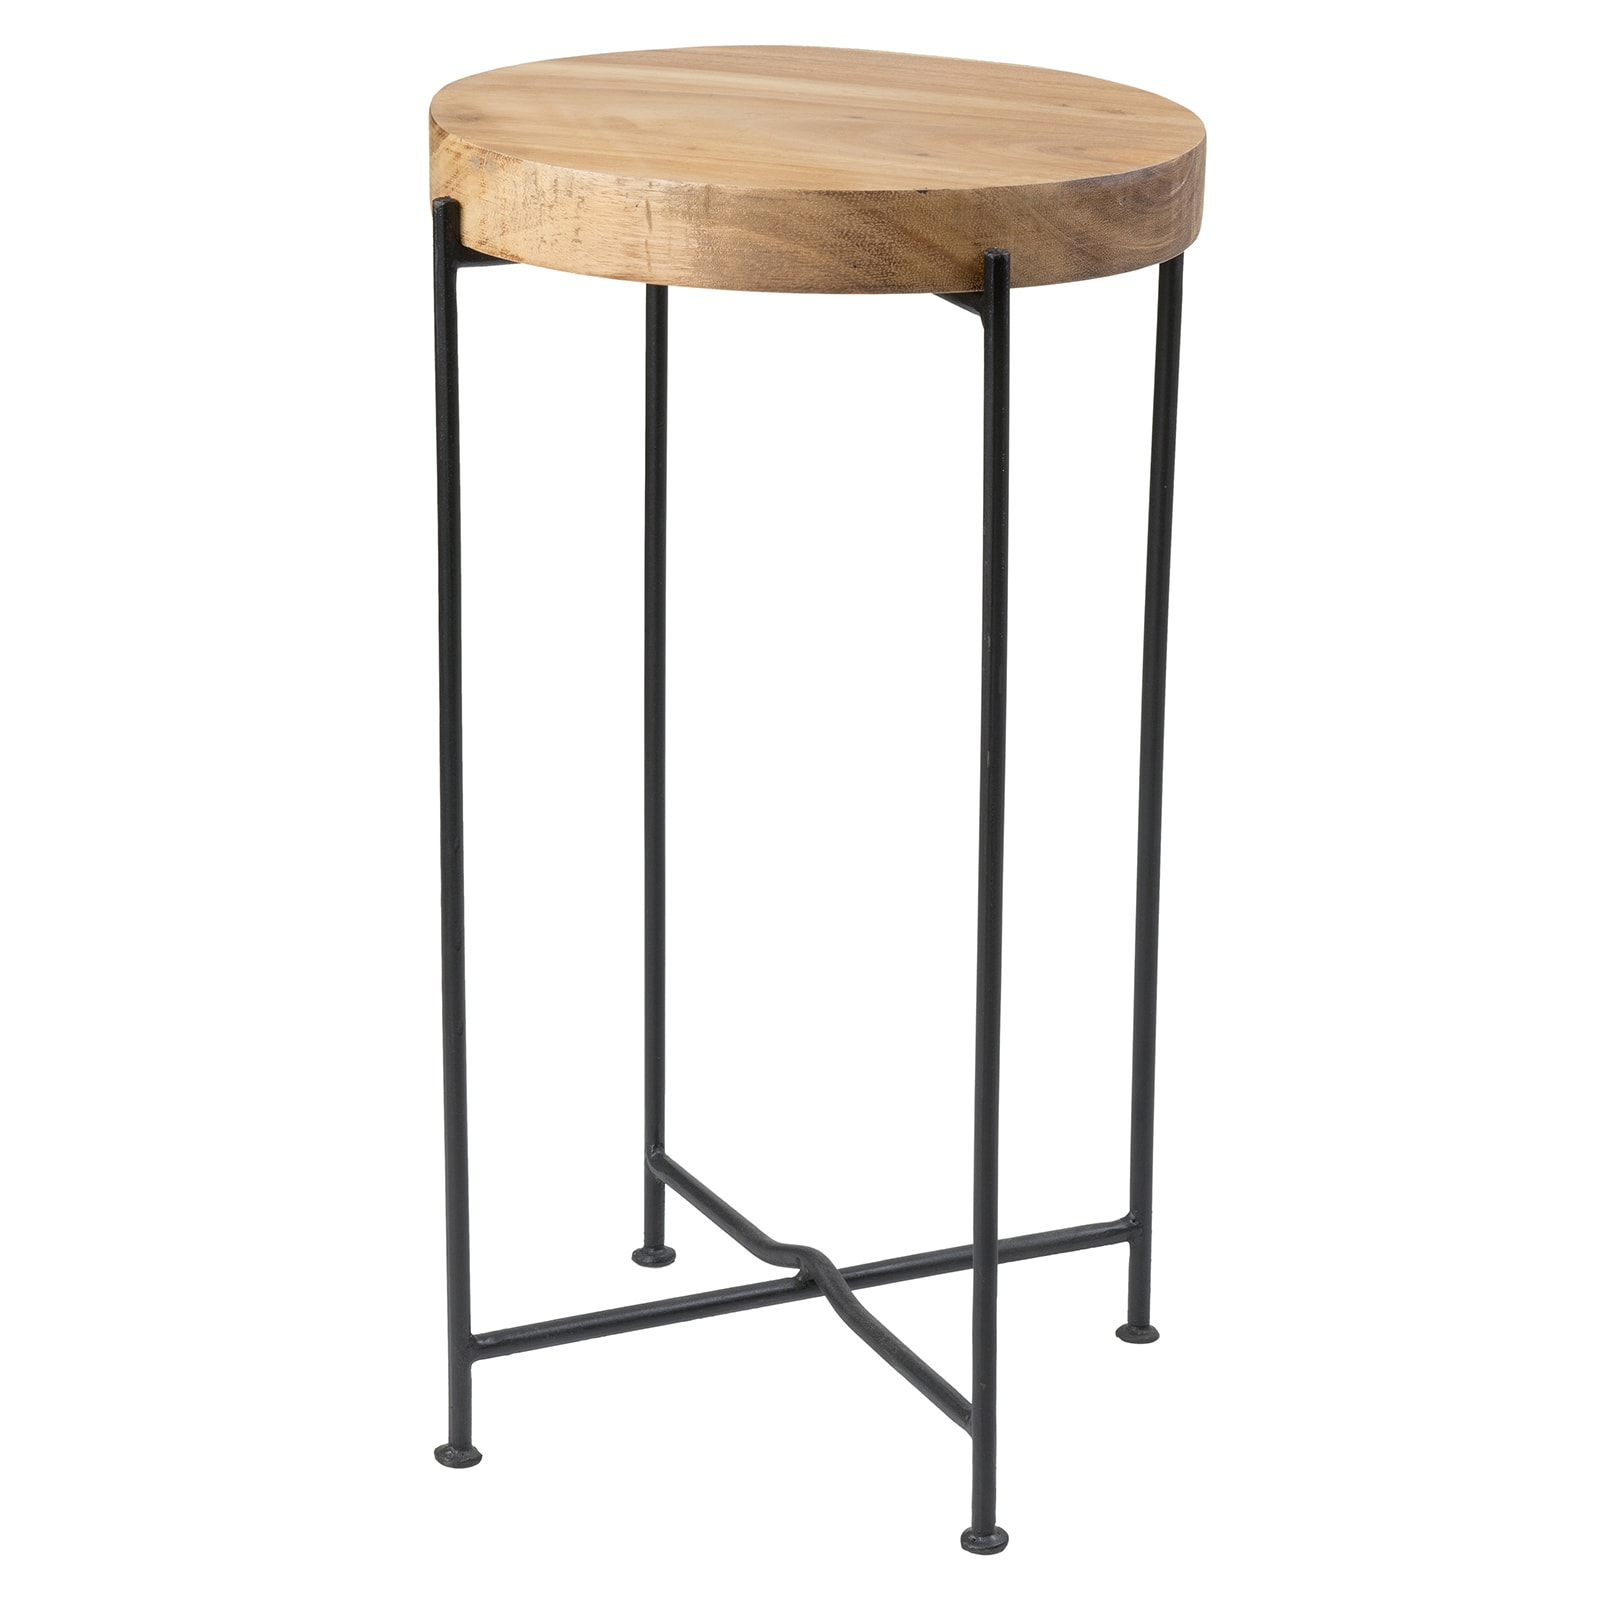 brown round teakwood accent table end side nightstand living room east mains rico transitional teak wood details black bedside contemporary trestle dining high top bar and chairs